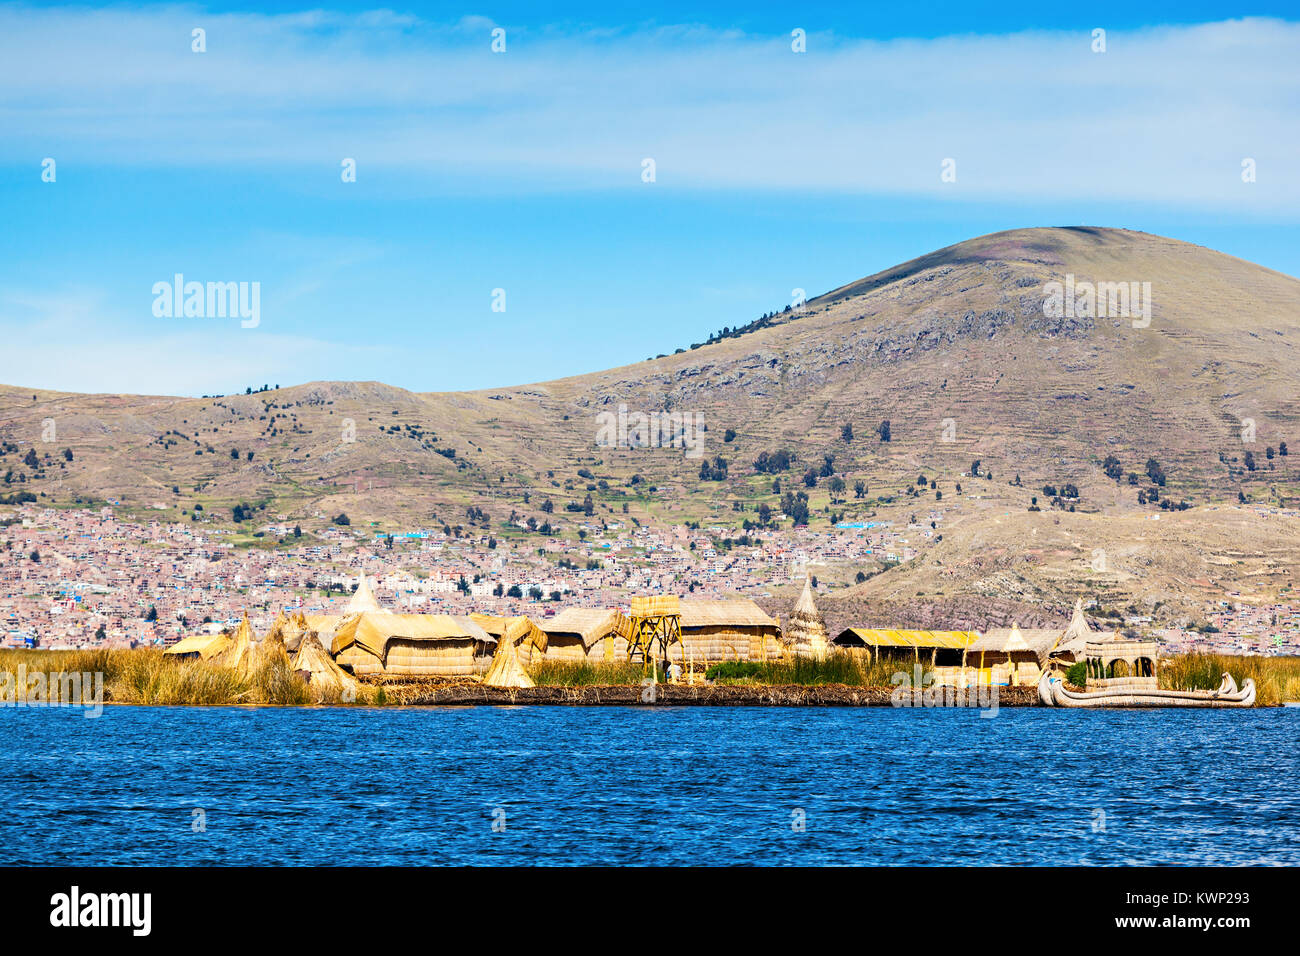 Uros floating island near Puno city, Peru - Stock Image